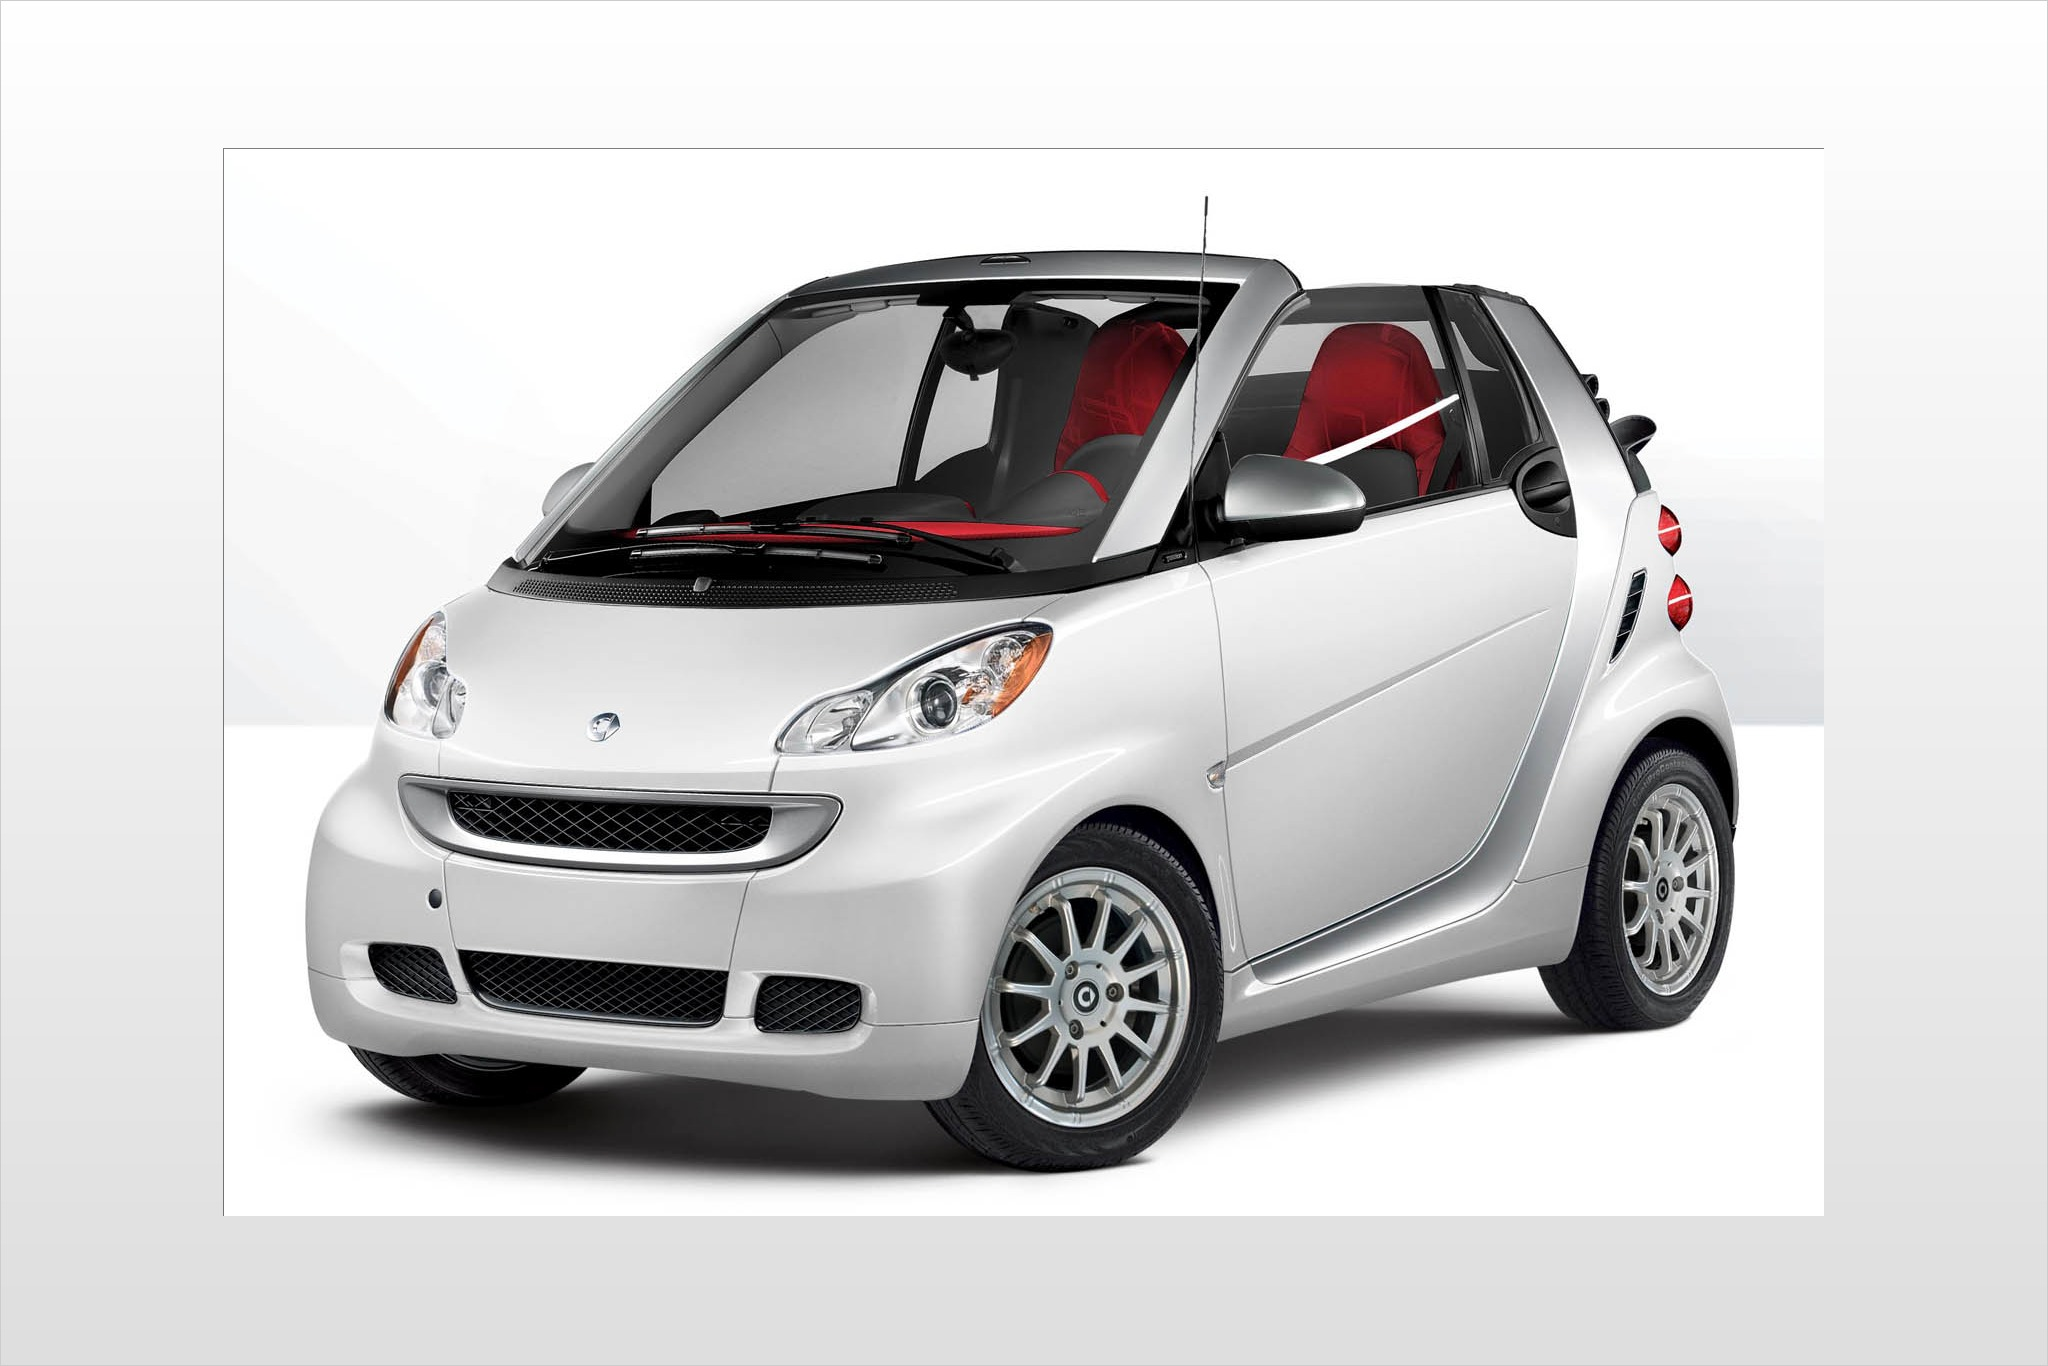 2012 smart fortwo 2dr Hat exterior #4